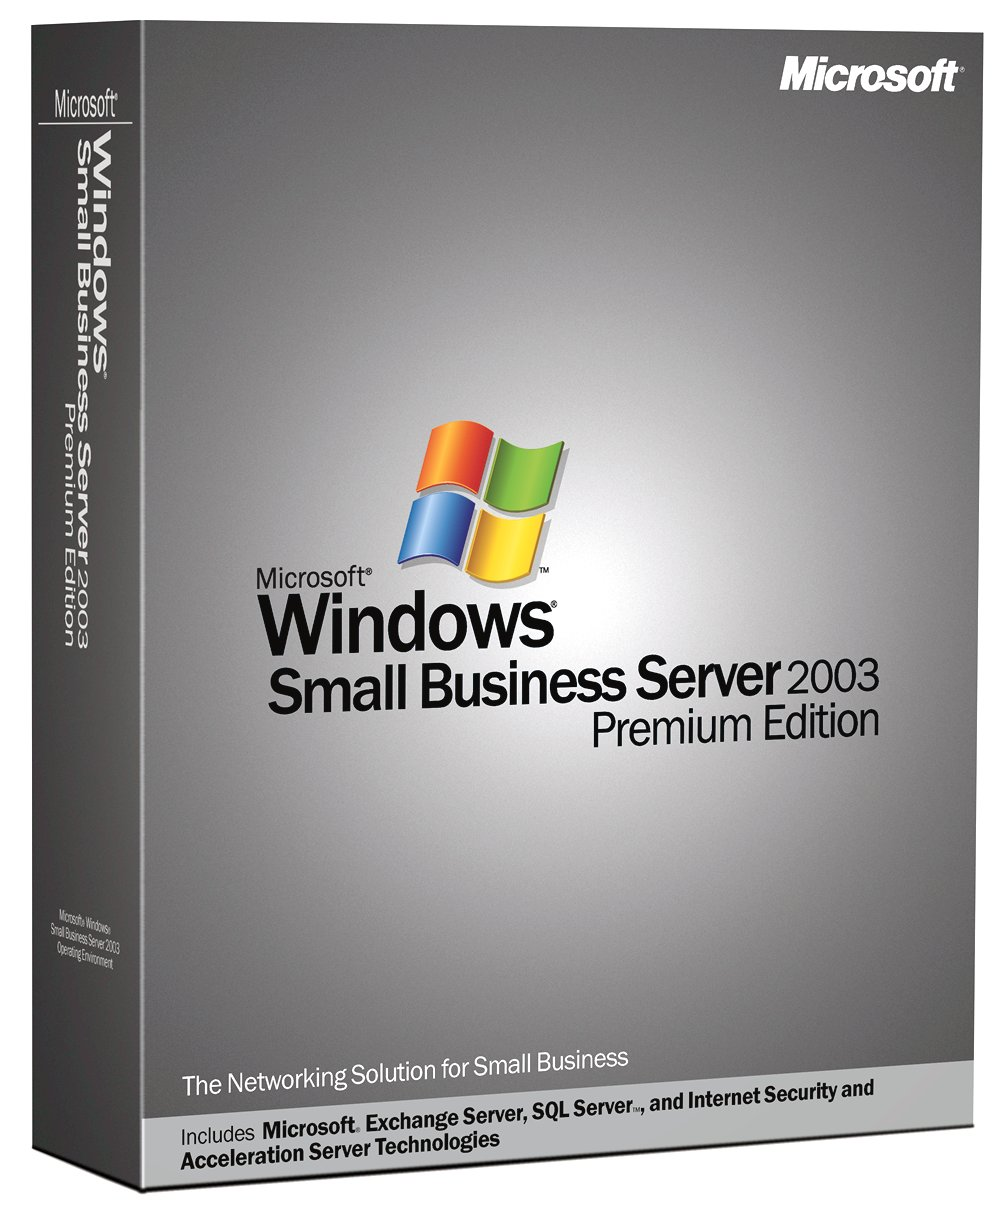 Microsoft Windows Small Business Server 2003 Premium Edition Product Key